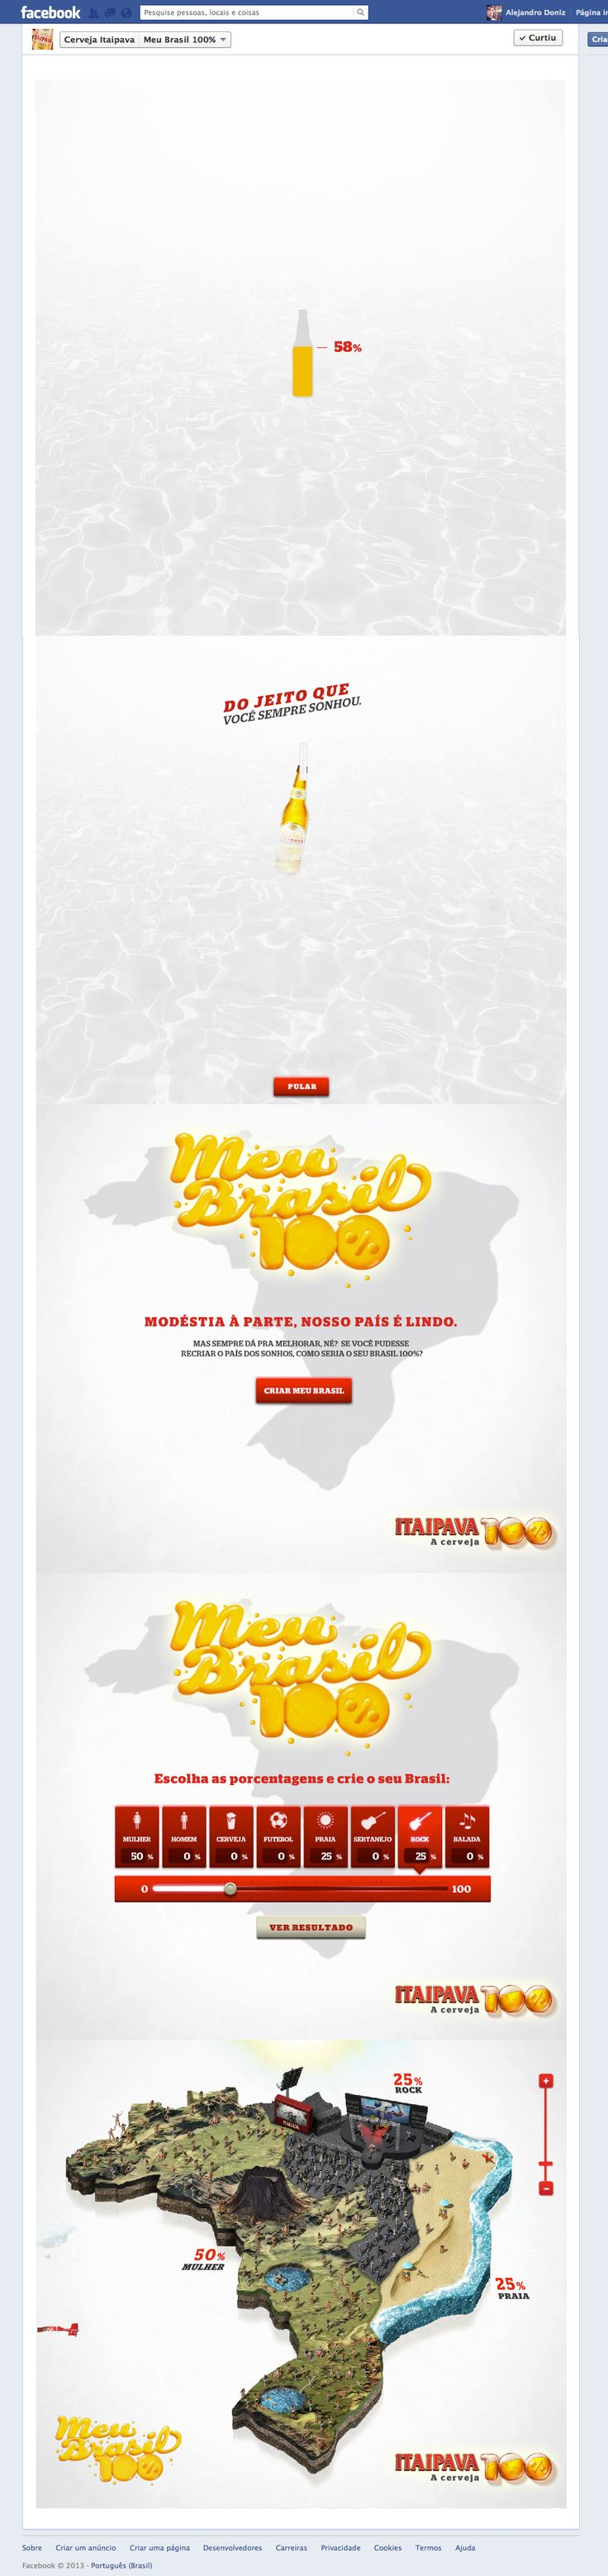 #itaipava #youngrubicam #artdirection #design #facebooktab #beer #100% #brazil #layout #interface #ui #ux #photoshop #manipulation #infographic #gray